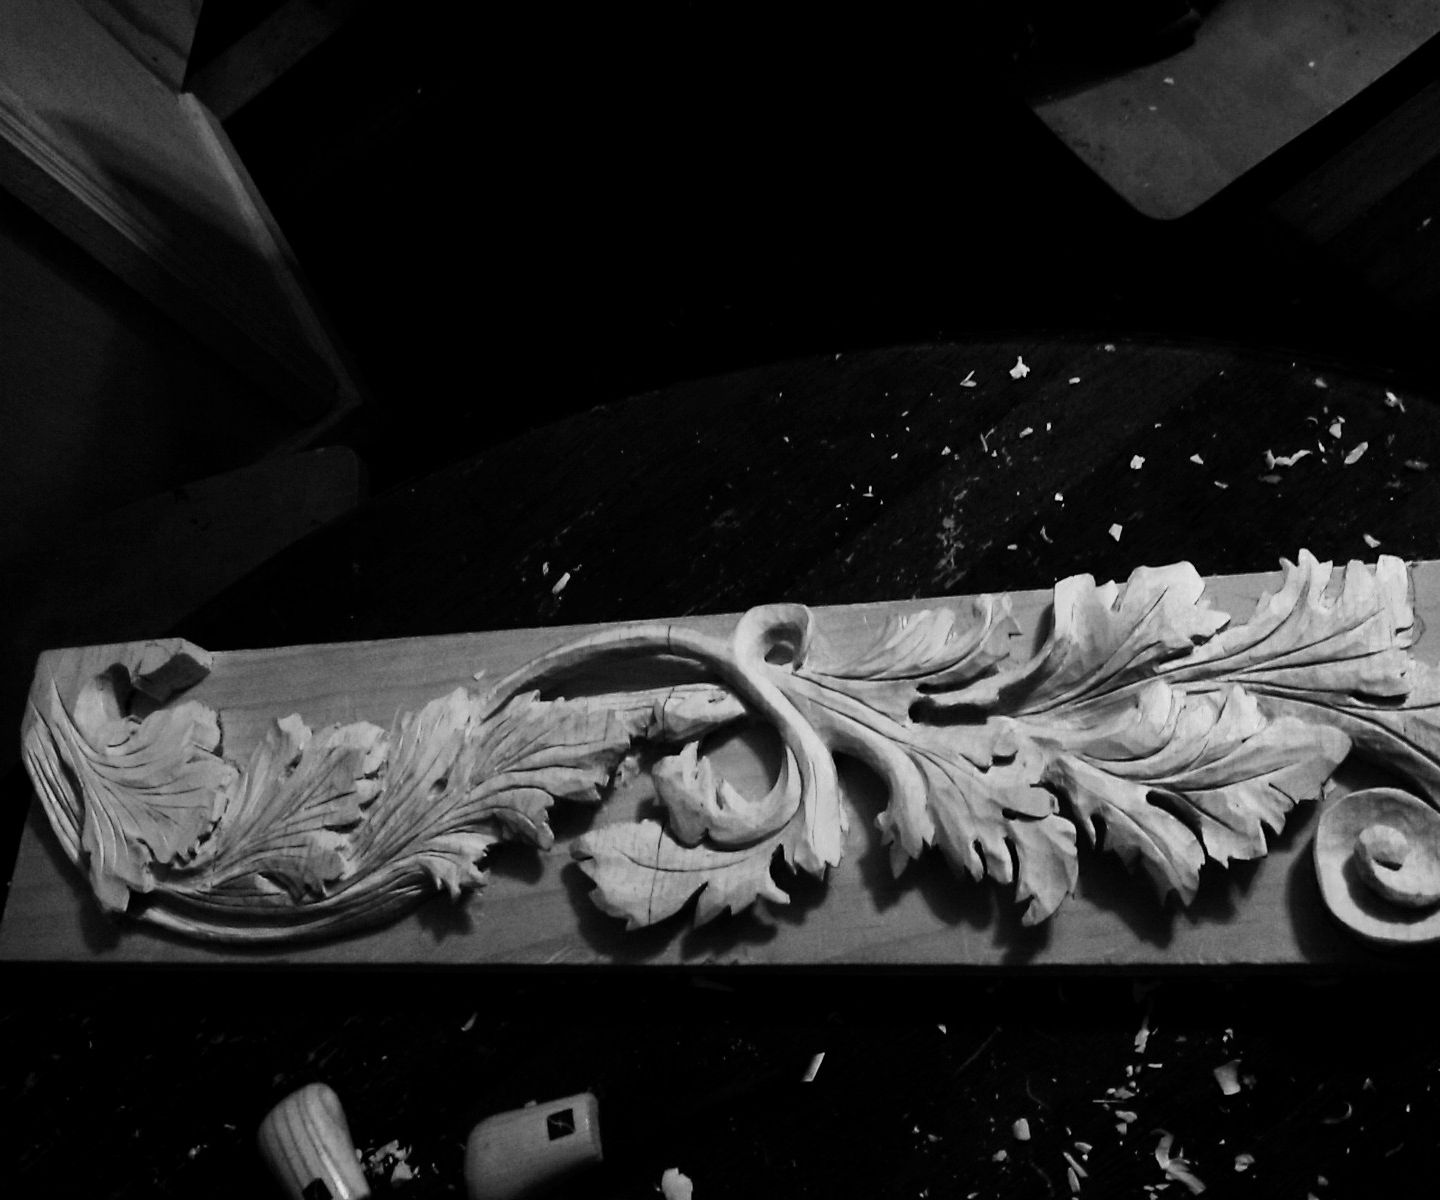 Relief carving made easy